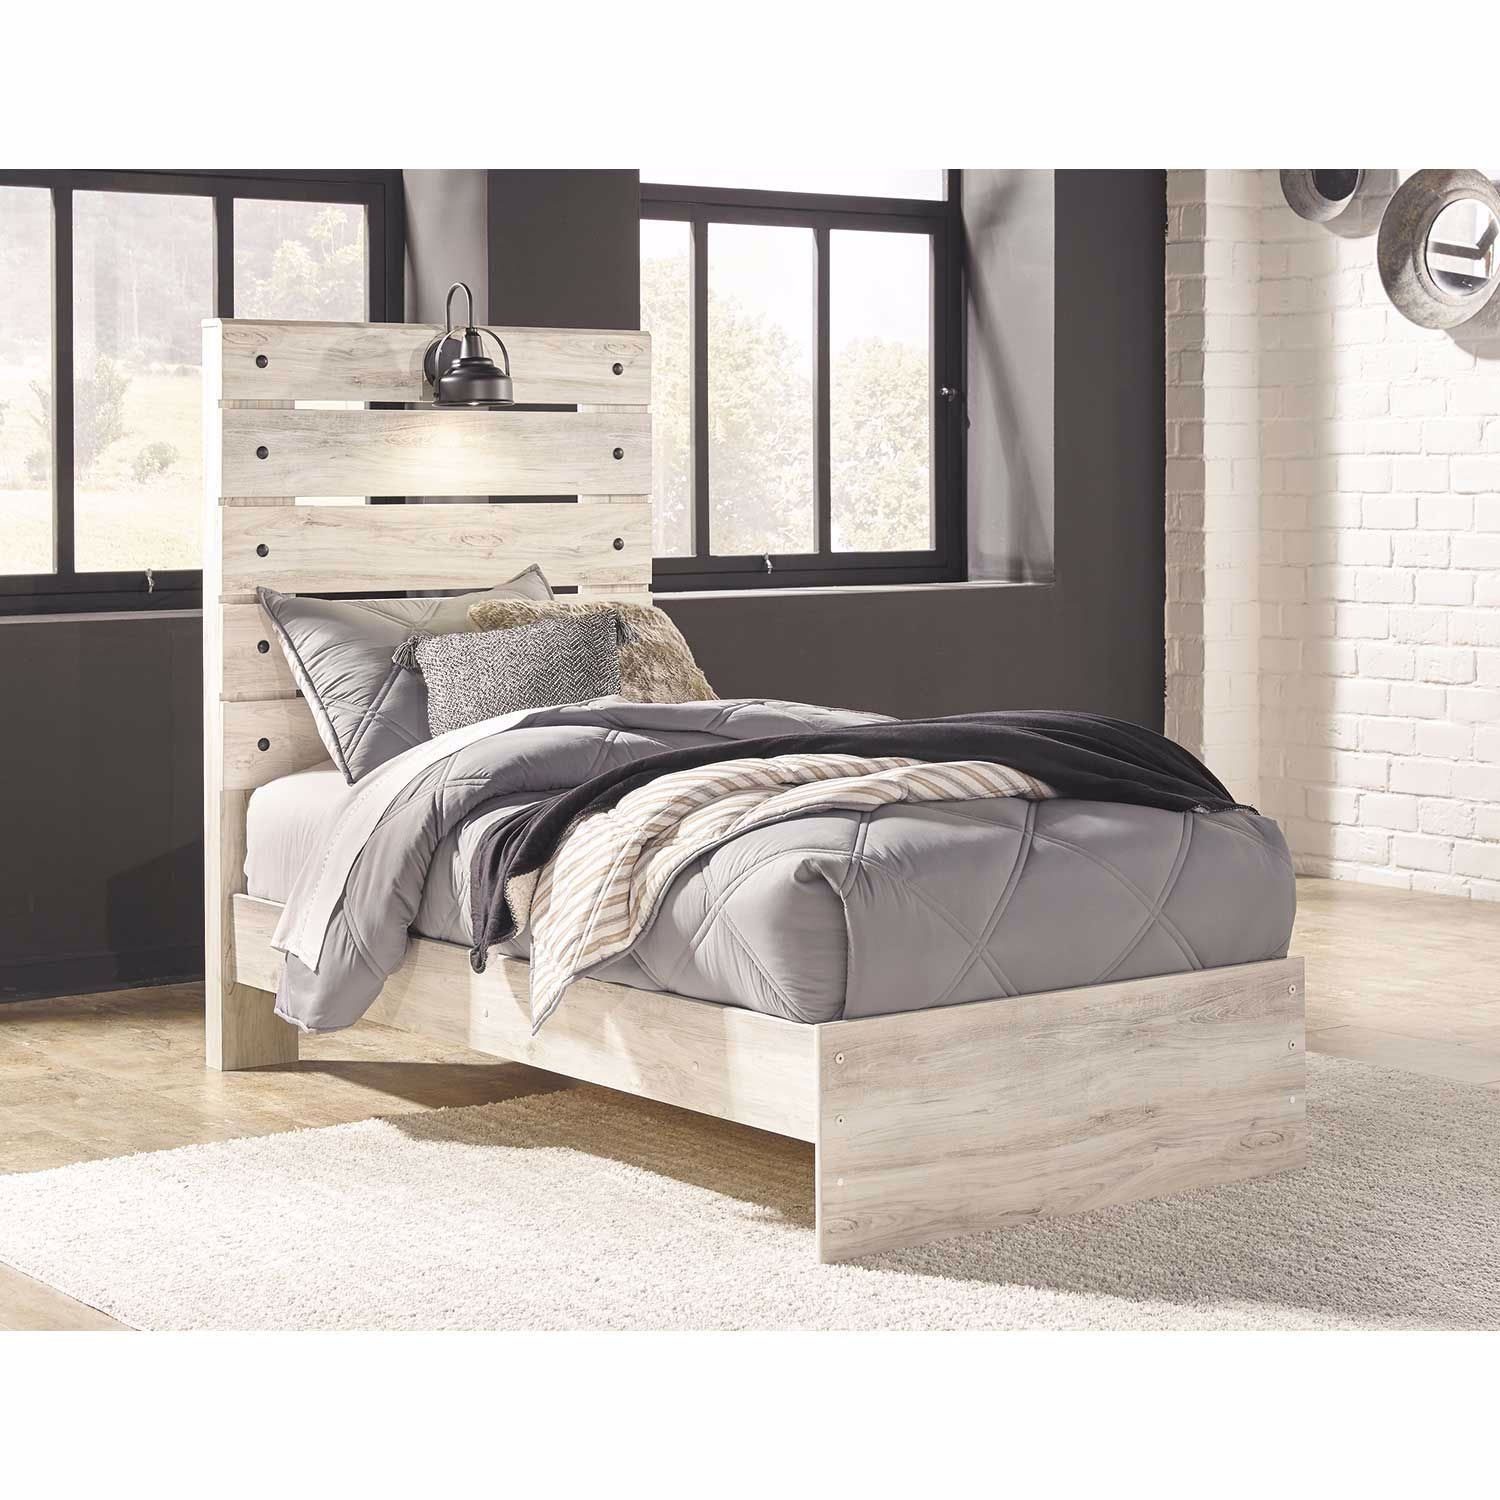 Cambeck Full Panel Bed Panel bed, Twin storage bed